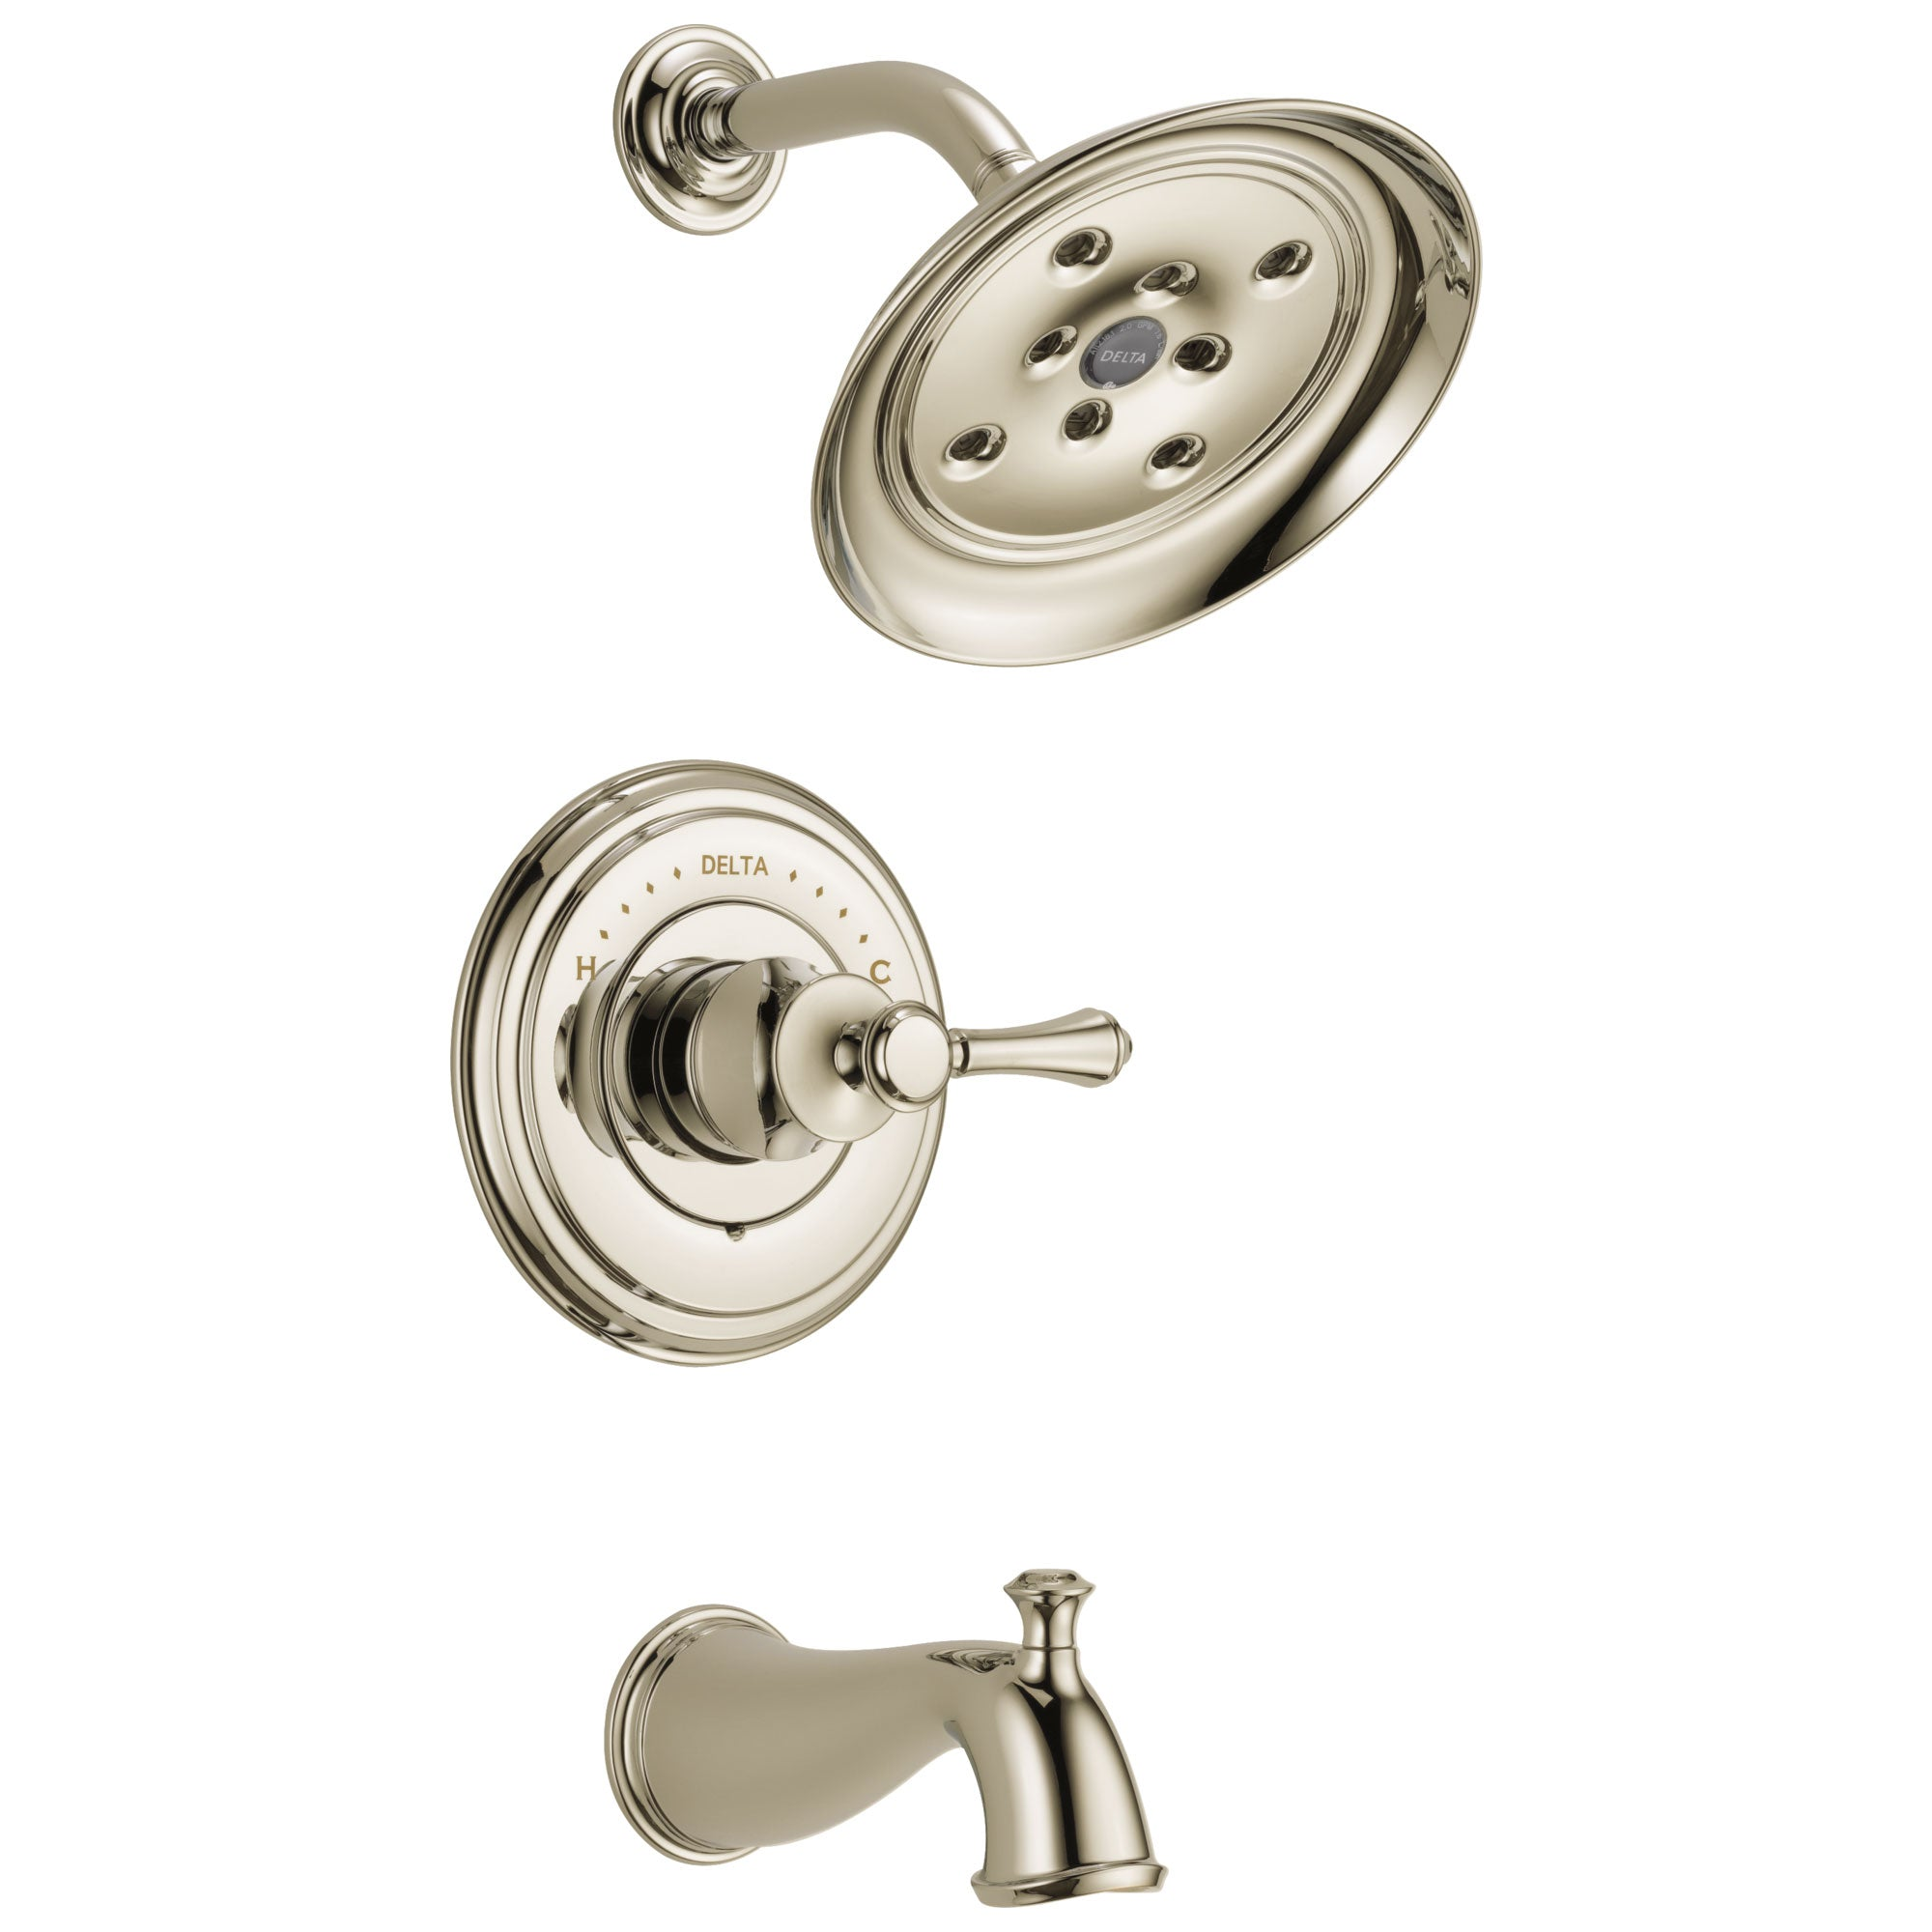 Delta Cassidy Collection Polished Nickel Monitor 14 Tub and Shower Faucet Combination INCLUDES Single Lever Handle and Rough-Valve without Stops D1477V